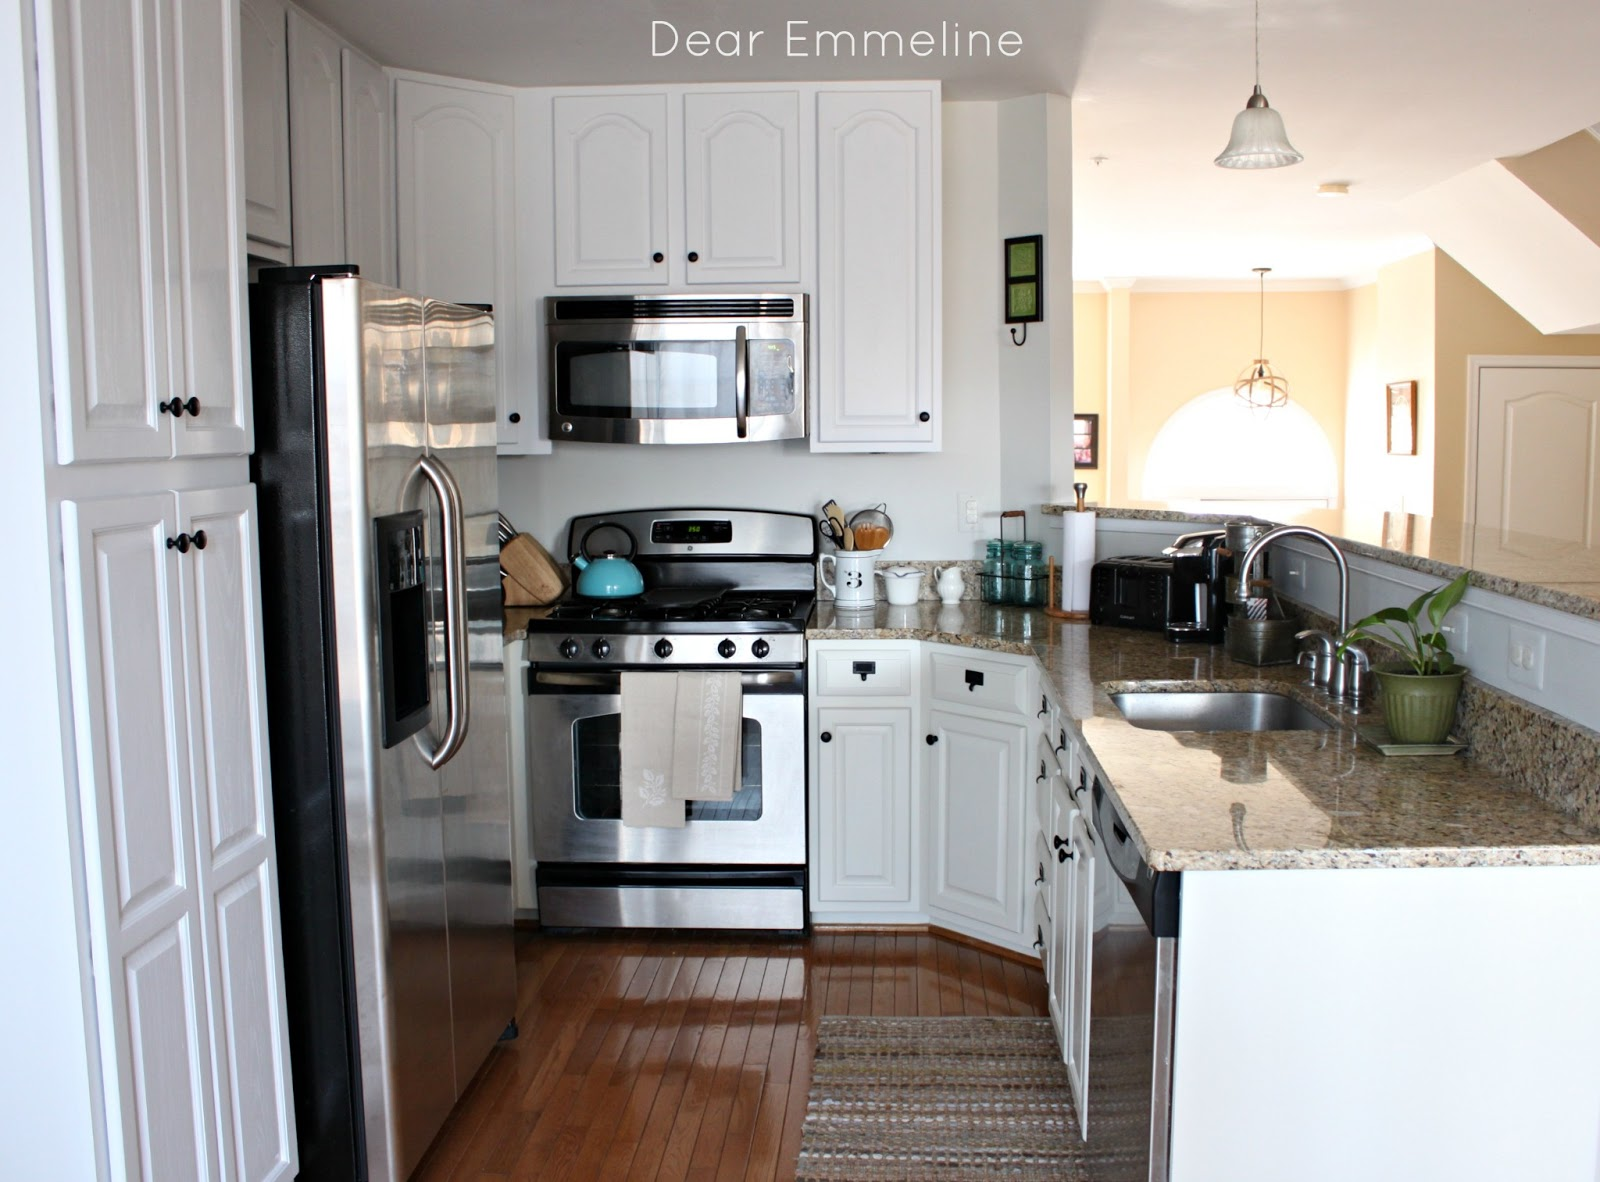 The captivating How to glaze kitchen cabinets for dark cabinet digital imagery